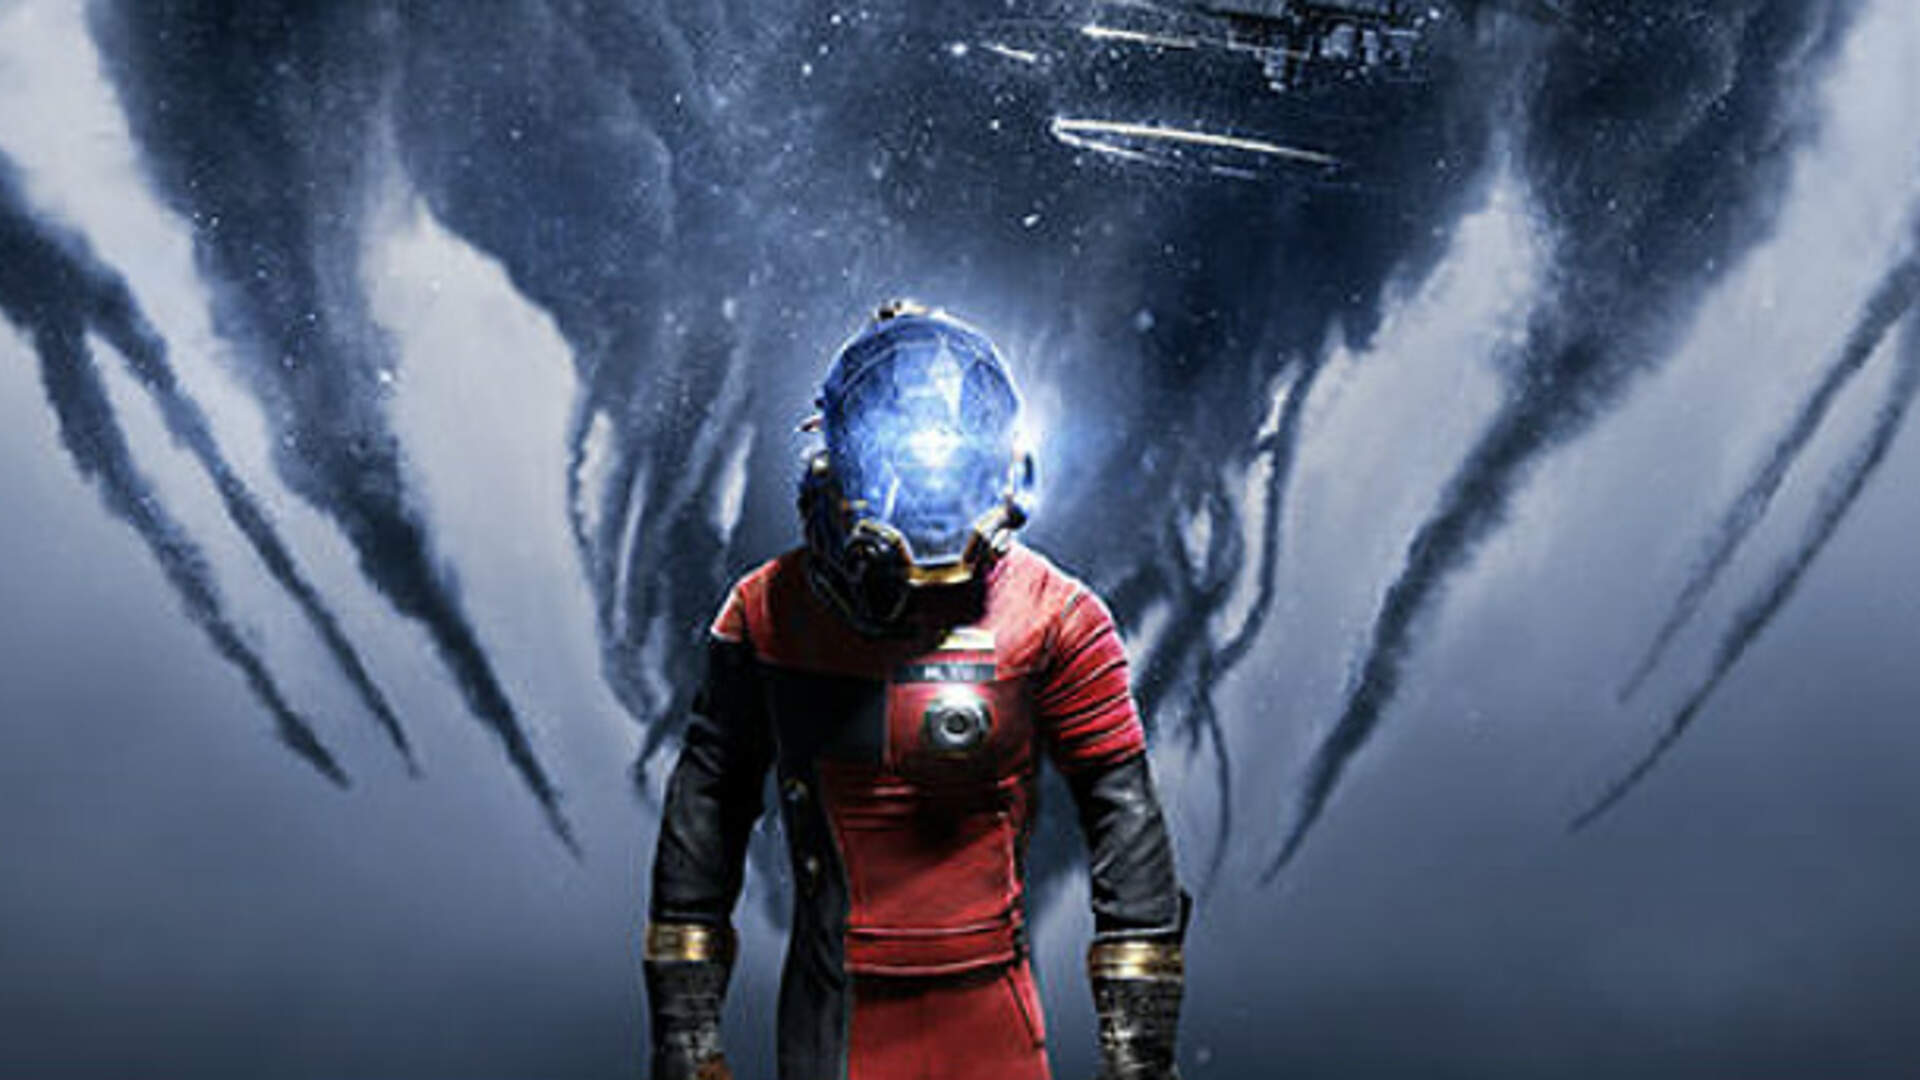 Prey Demo Coming to Xbox One and PS4 on April 27